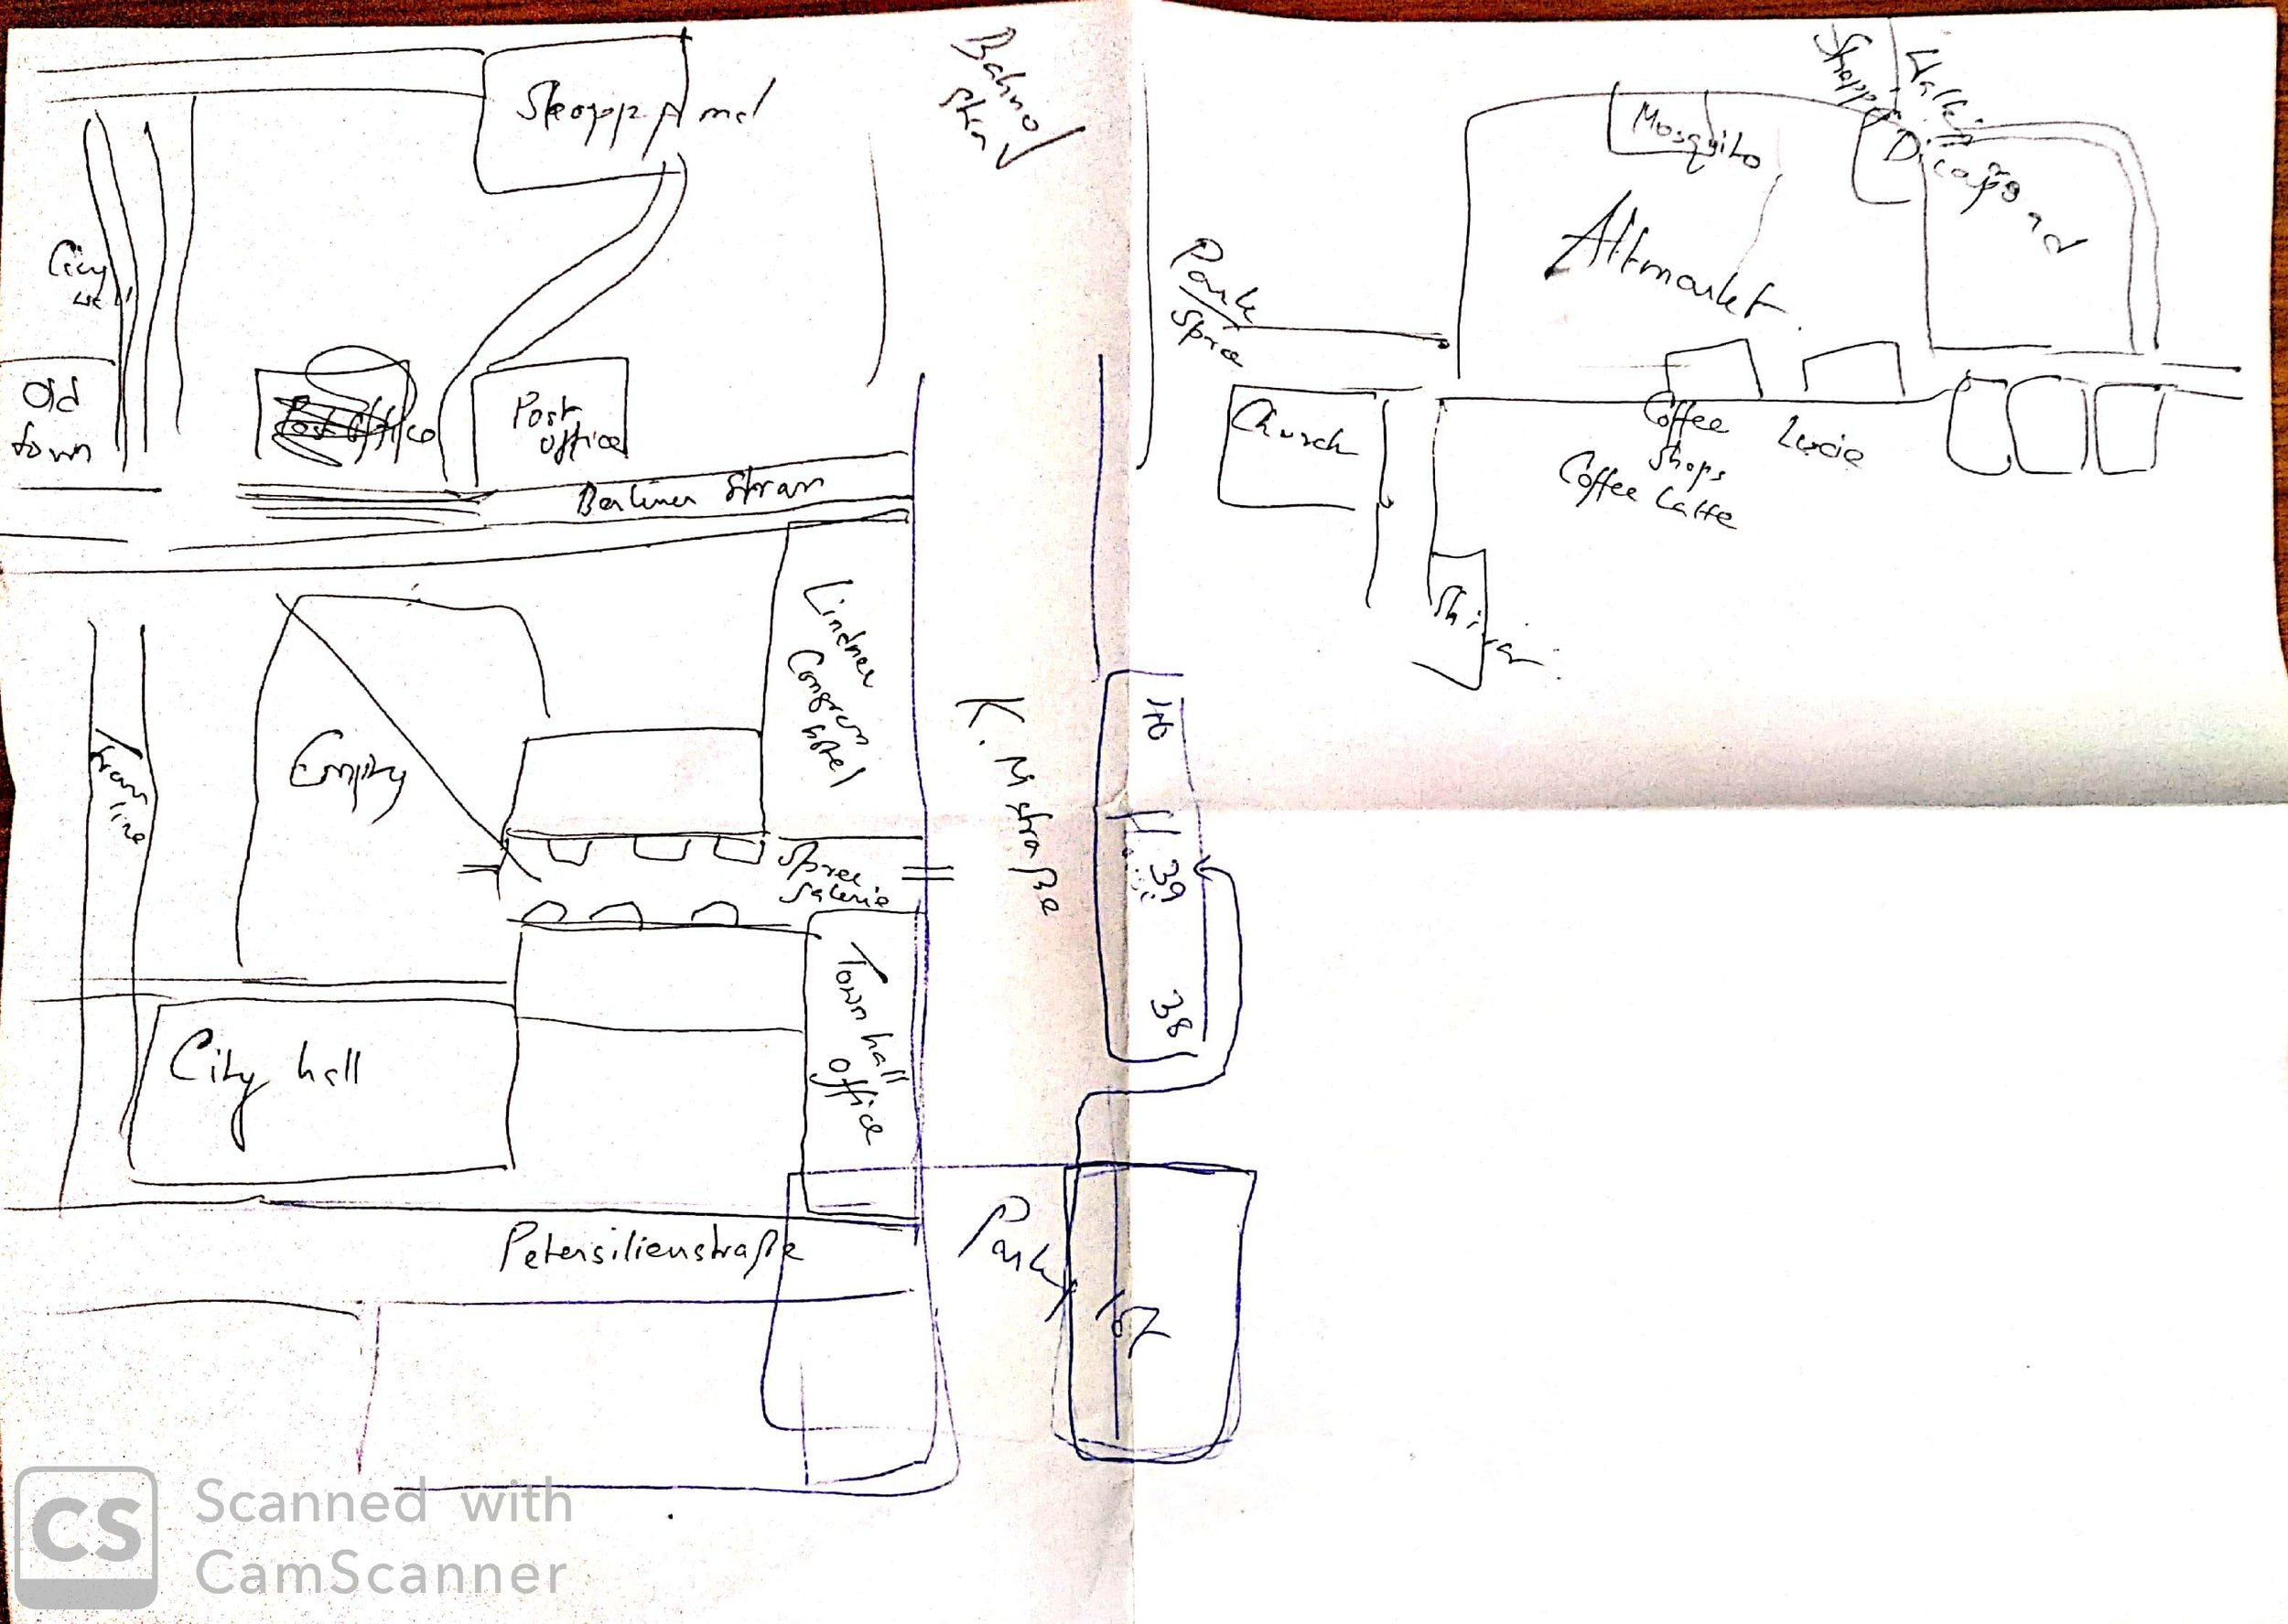 A detailed map of Dresden that my cousin had thoughtfully drawn for me, and which I summarily ignored